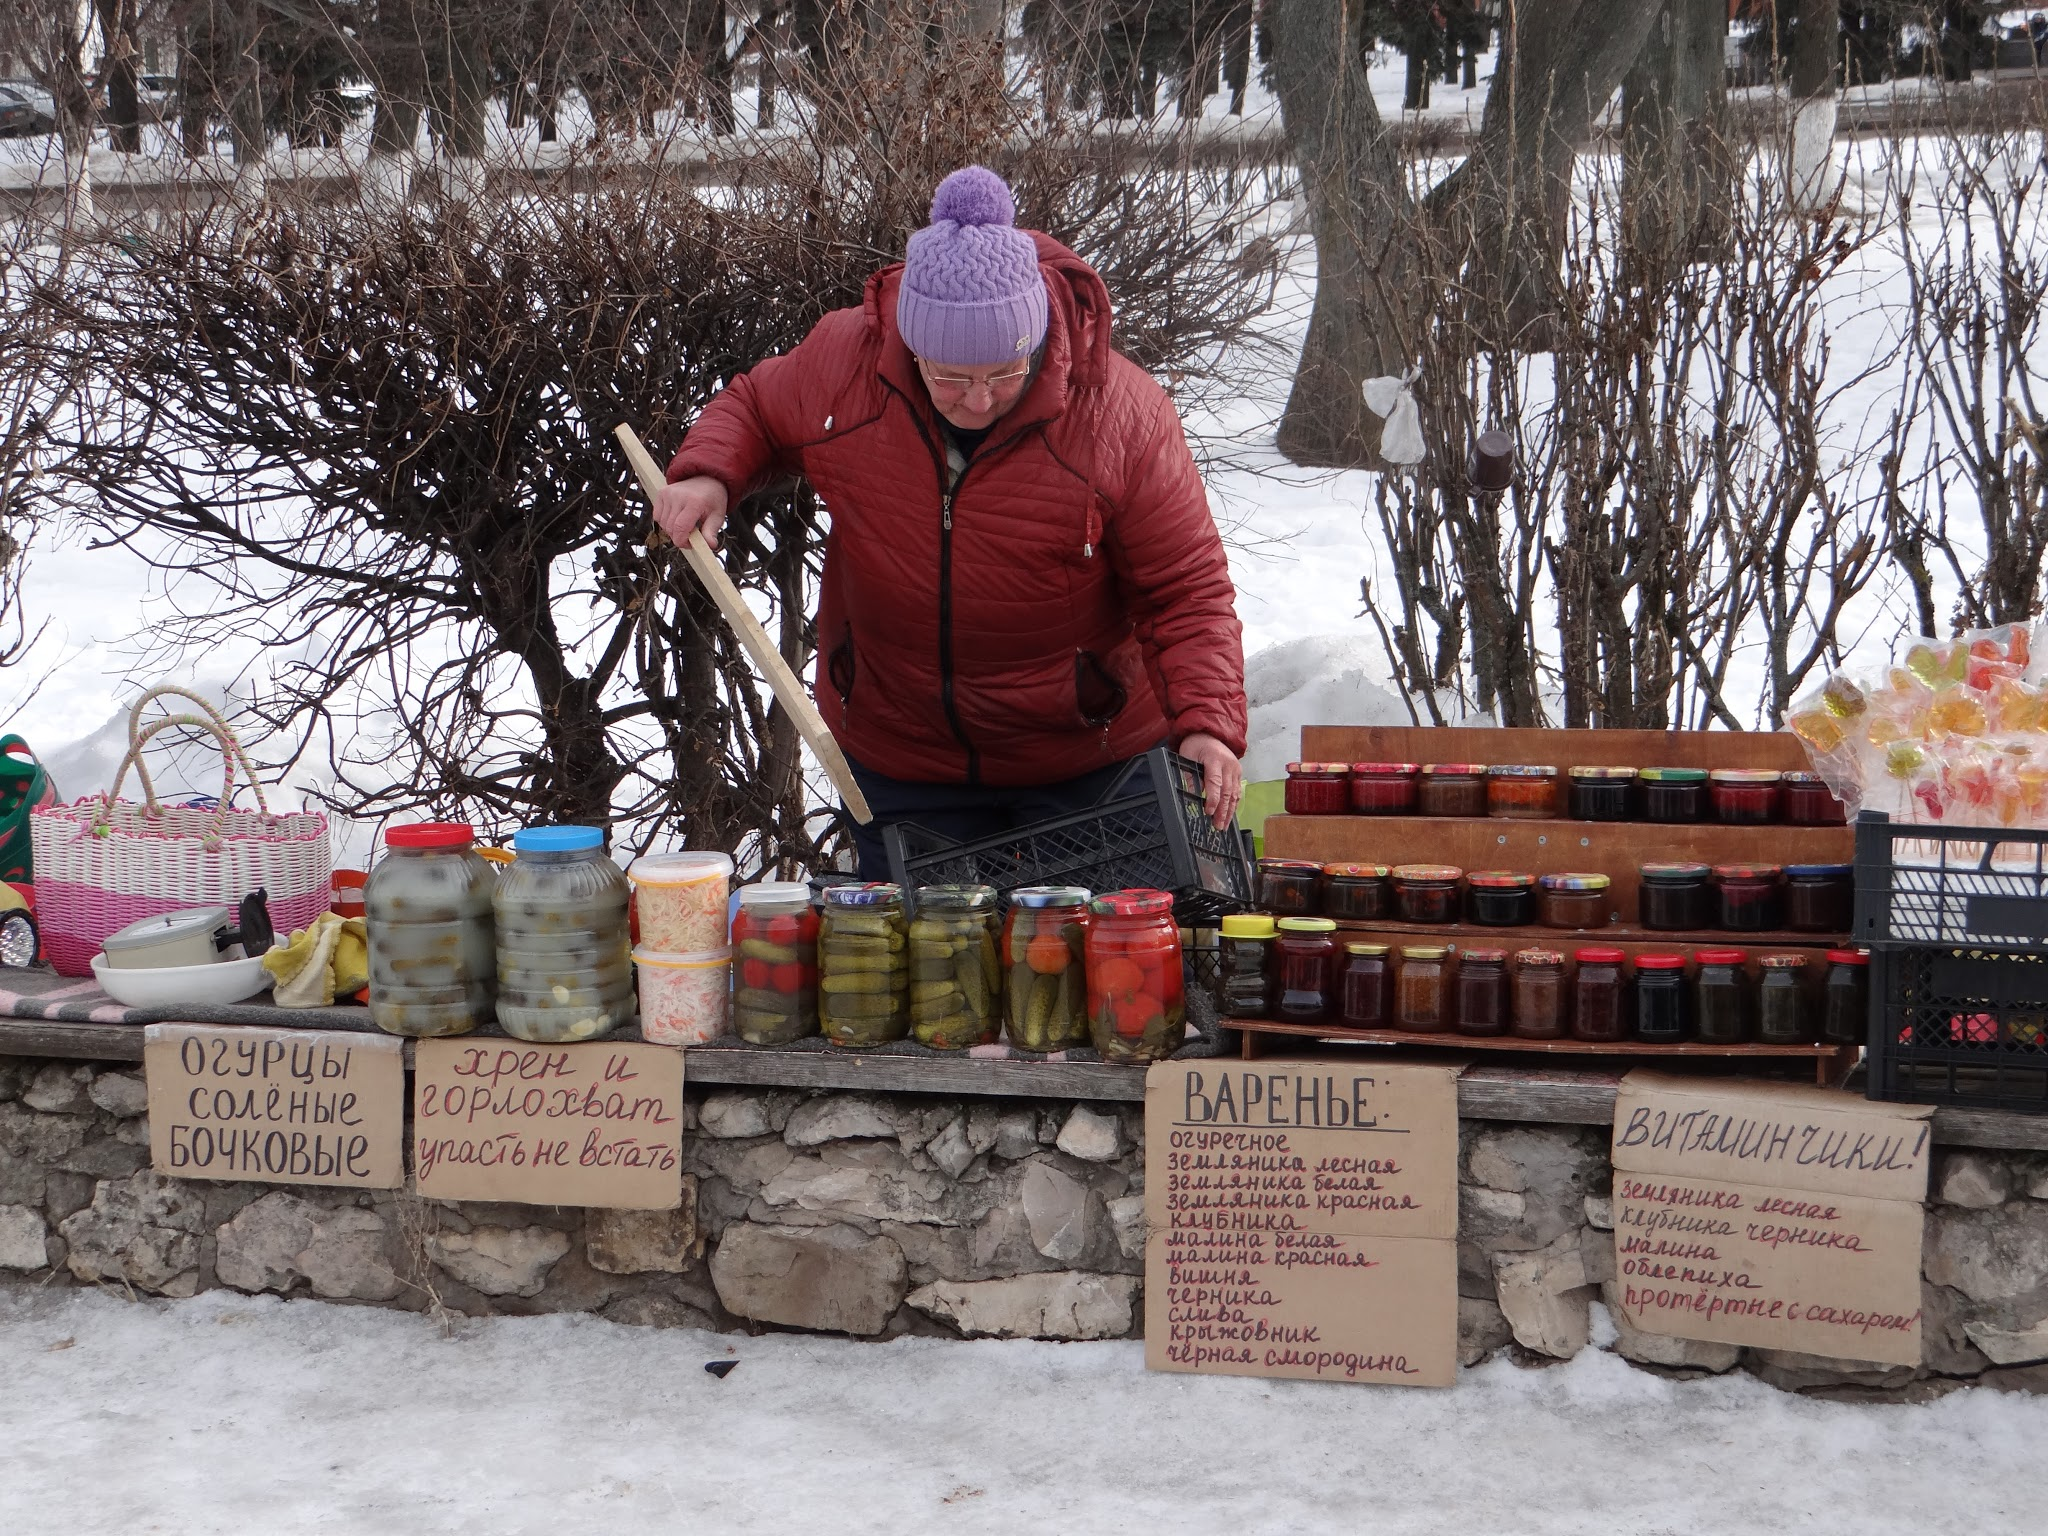 Street selling of homemade pickles and confiture is a Russian classic, but here in Suzdal it is taken at a whole new level